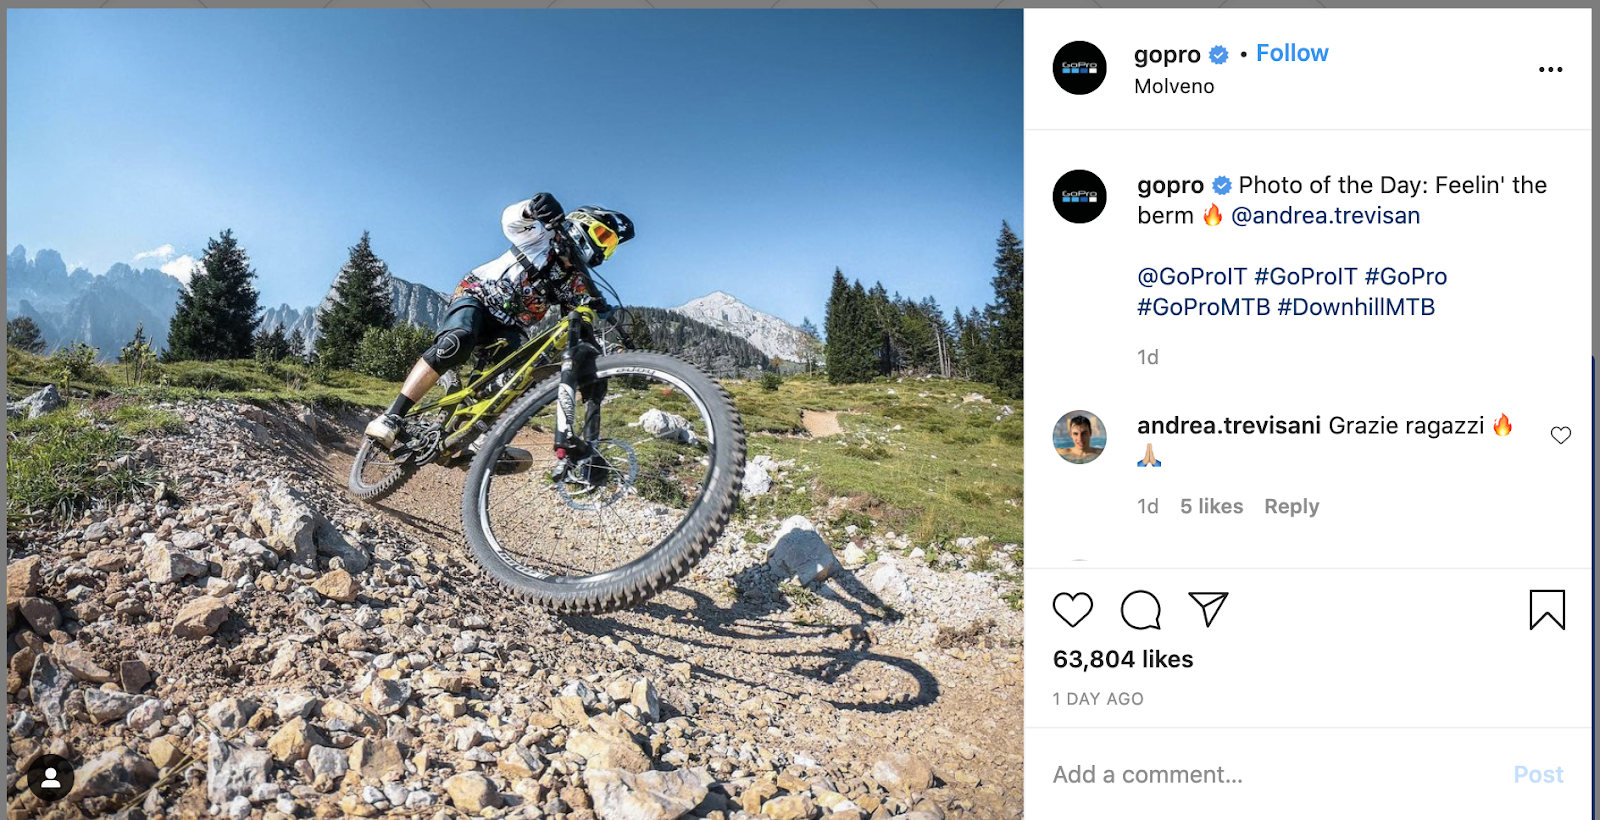 example of user-generated content by gopro